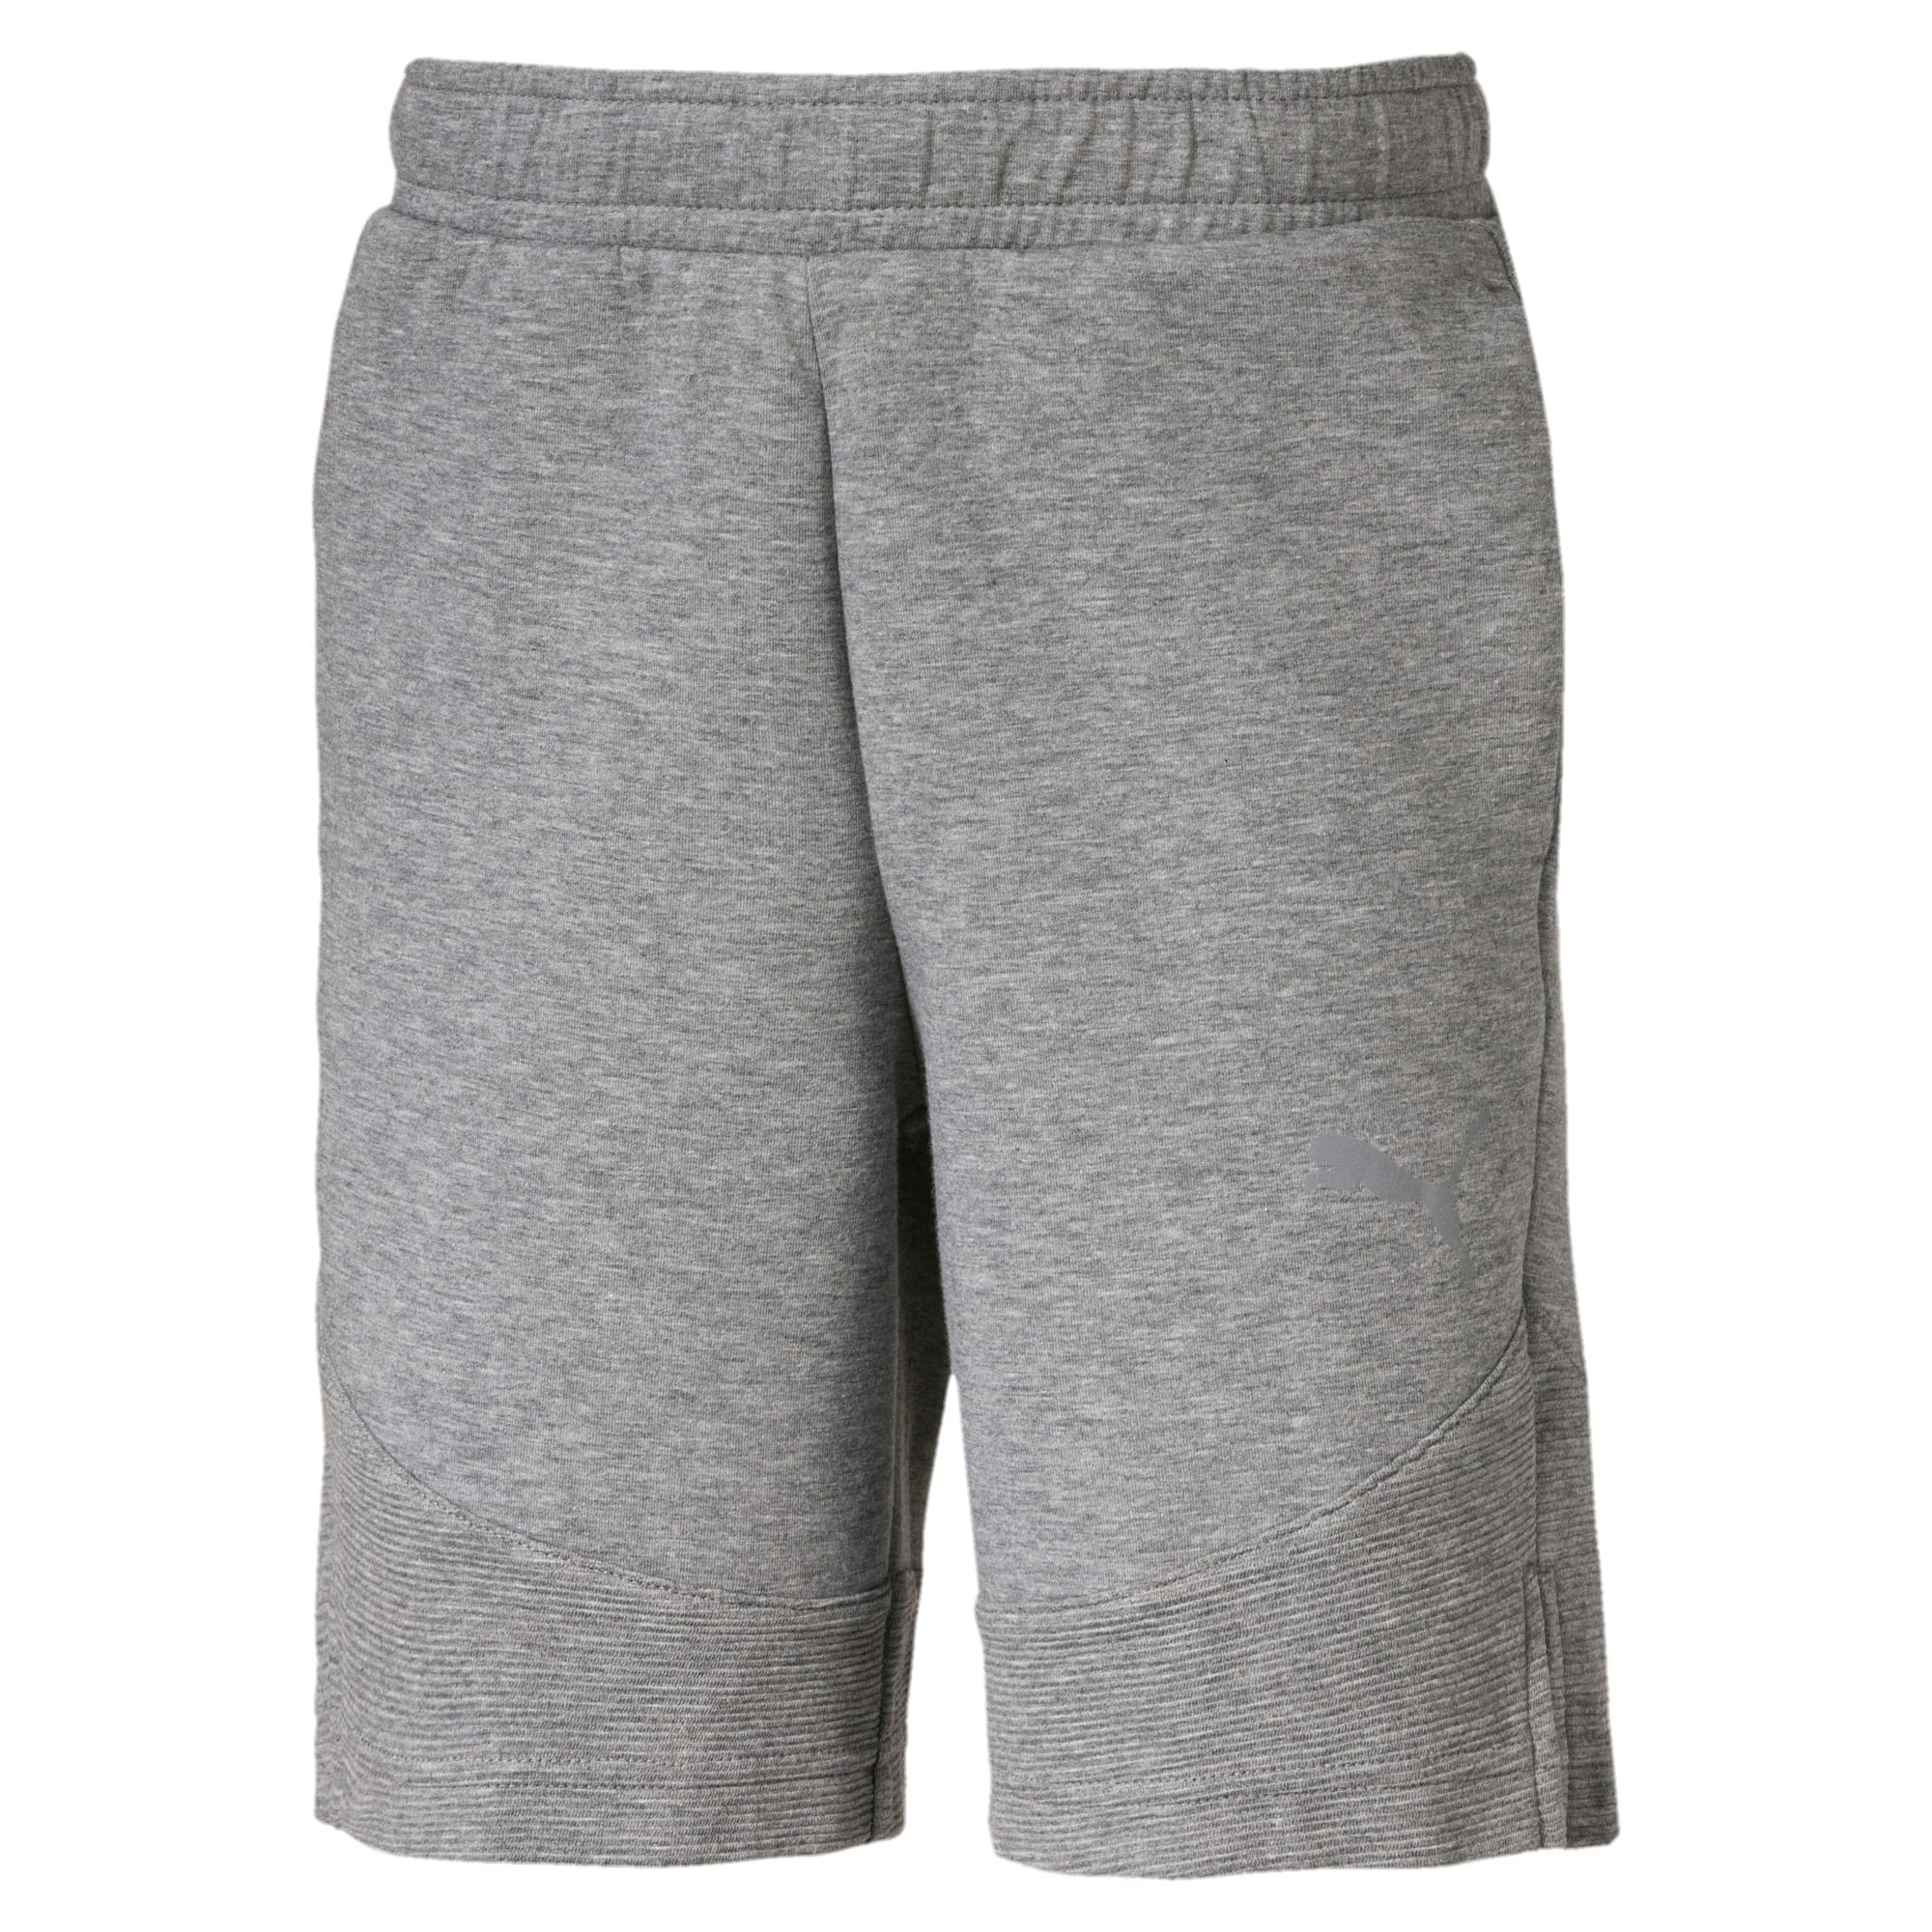 Thumbnail 1 of Evostripe Knitted Boys' Shorts, Medium Gray Heather, medium